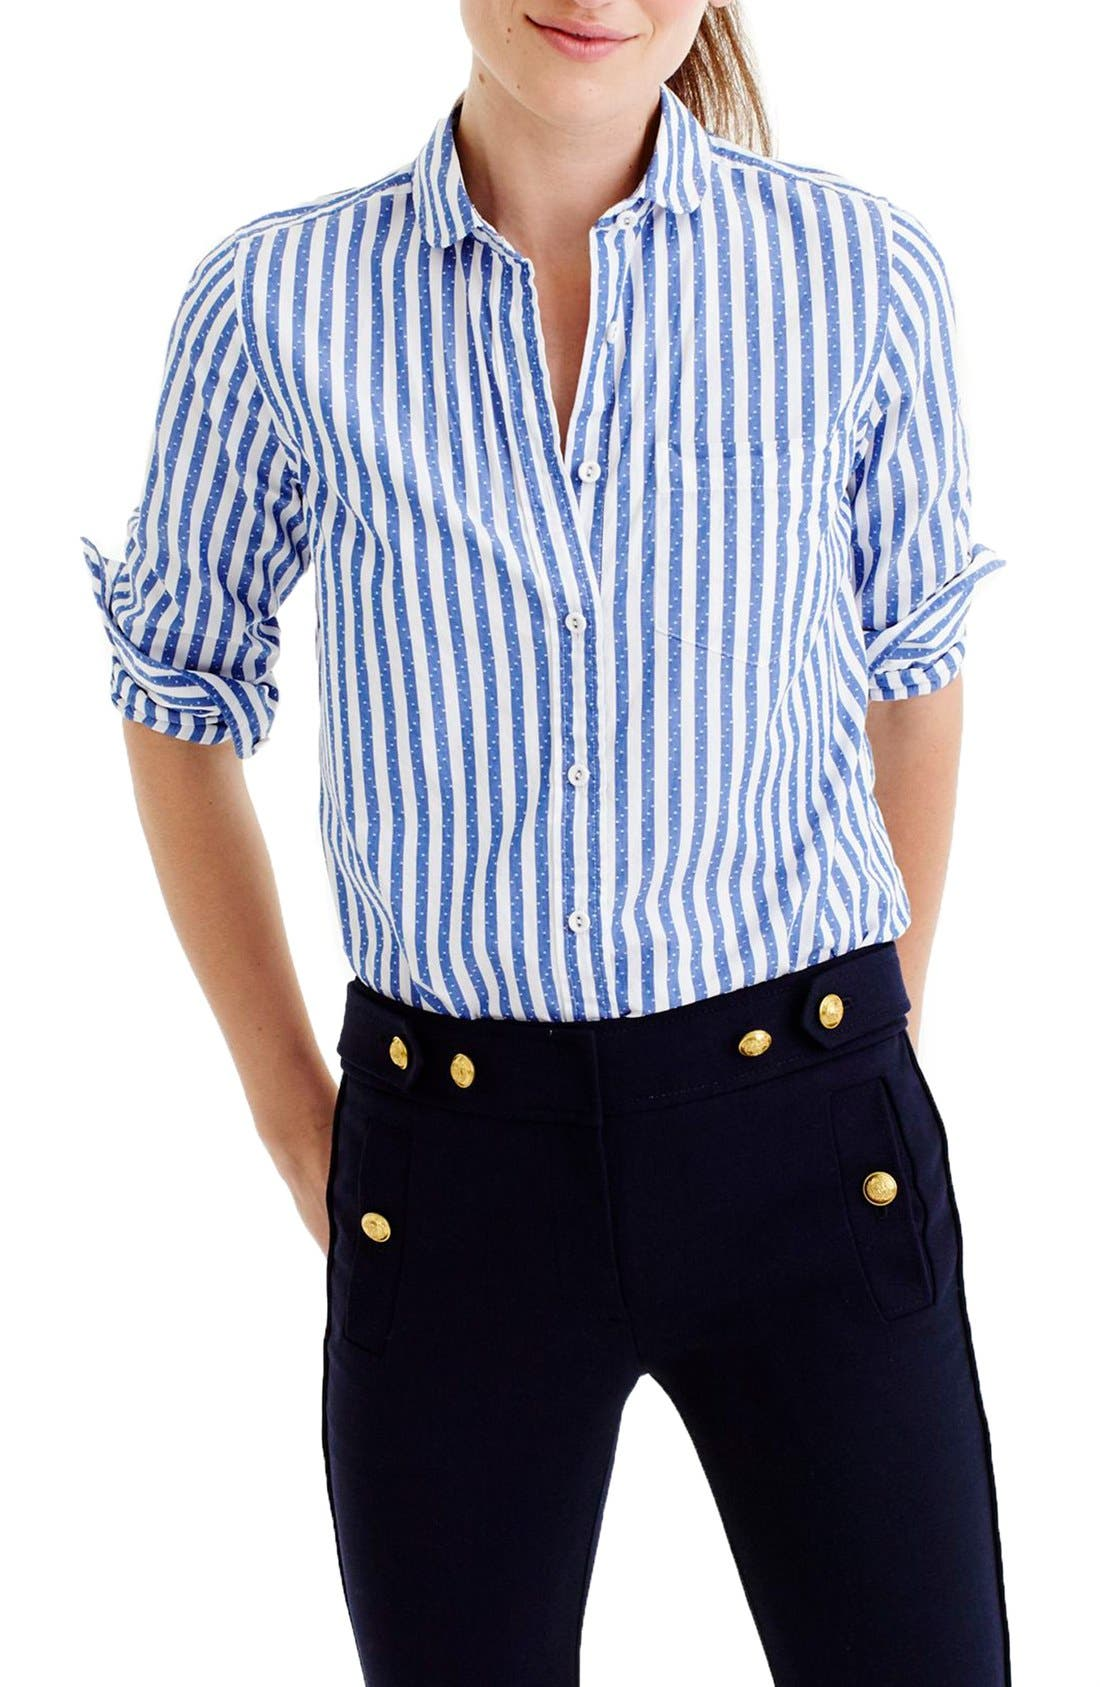 Main Image - J.Crew Club Collar Jacquard Stripe Boy Shirt (Regular & Petite)